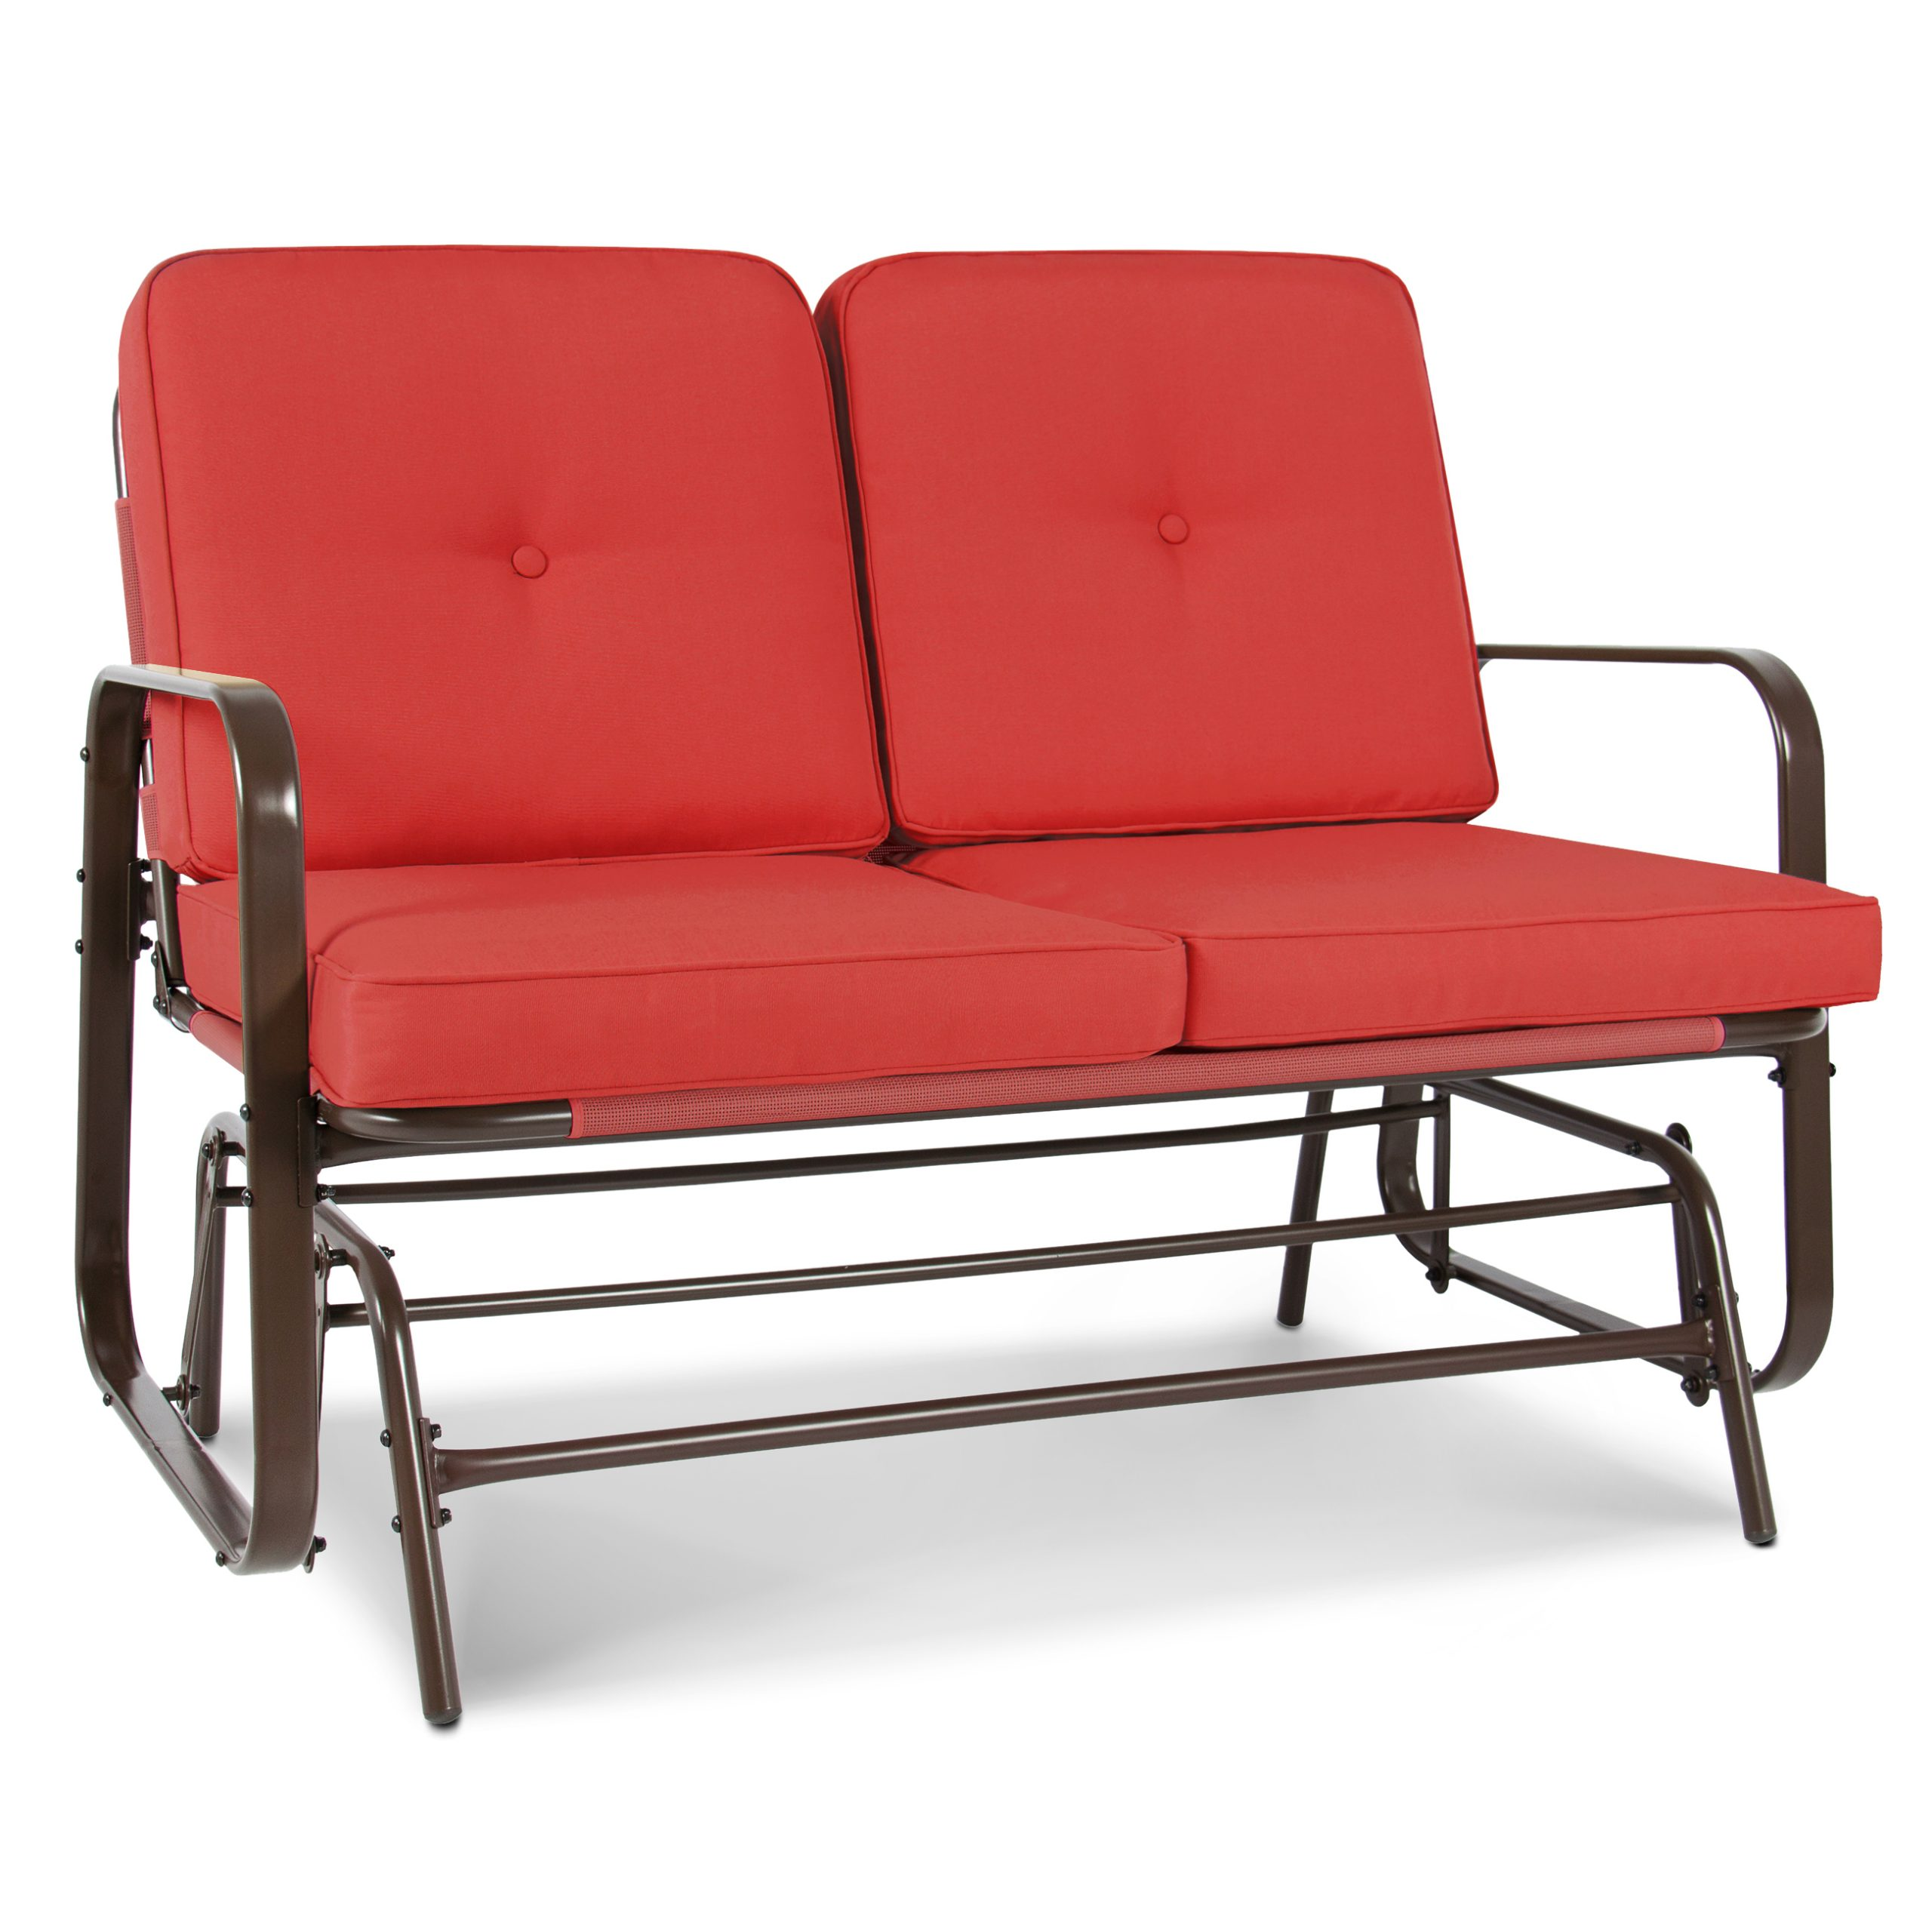 Best Choice Products 2 Person Outdoor Patio Glider Loveseat Rocking Chair  W/ Uv Resistant Cushions – Red Orange Pertaining To 2 Person Antique Black Iron Outdoor Gliders (Image 3 of 25)